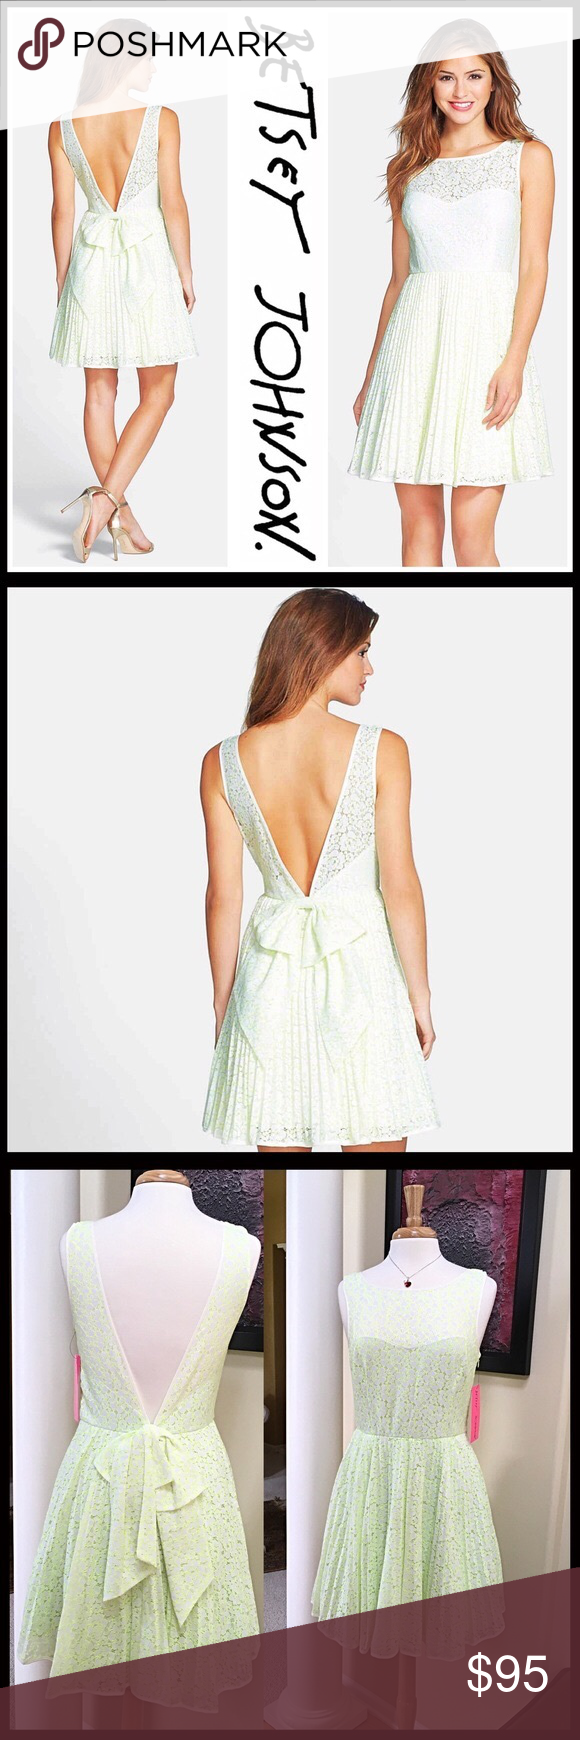 Betsey johnson wedding dresses  BETSEY JOHNSON DRESS Lace FitAndFlare NWT  Crew neck Green and Lace